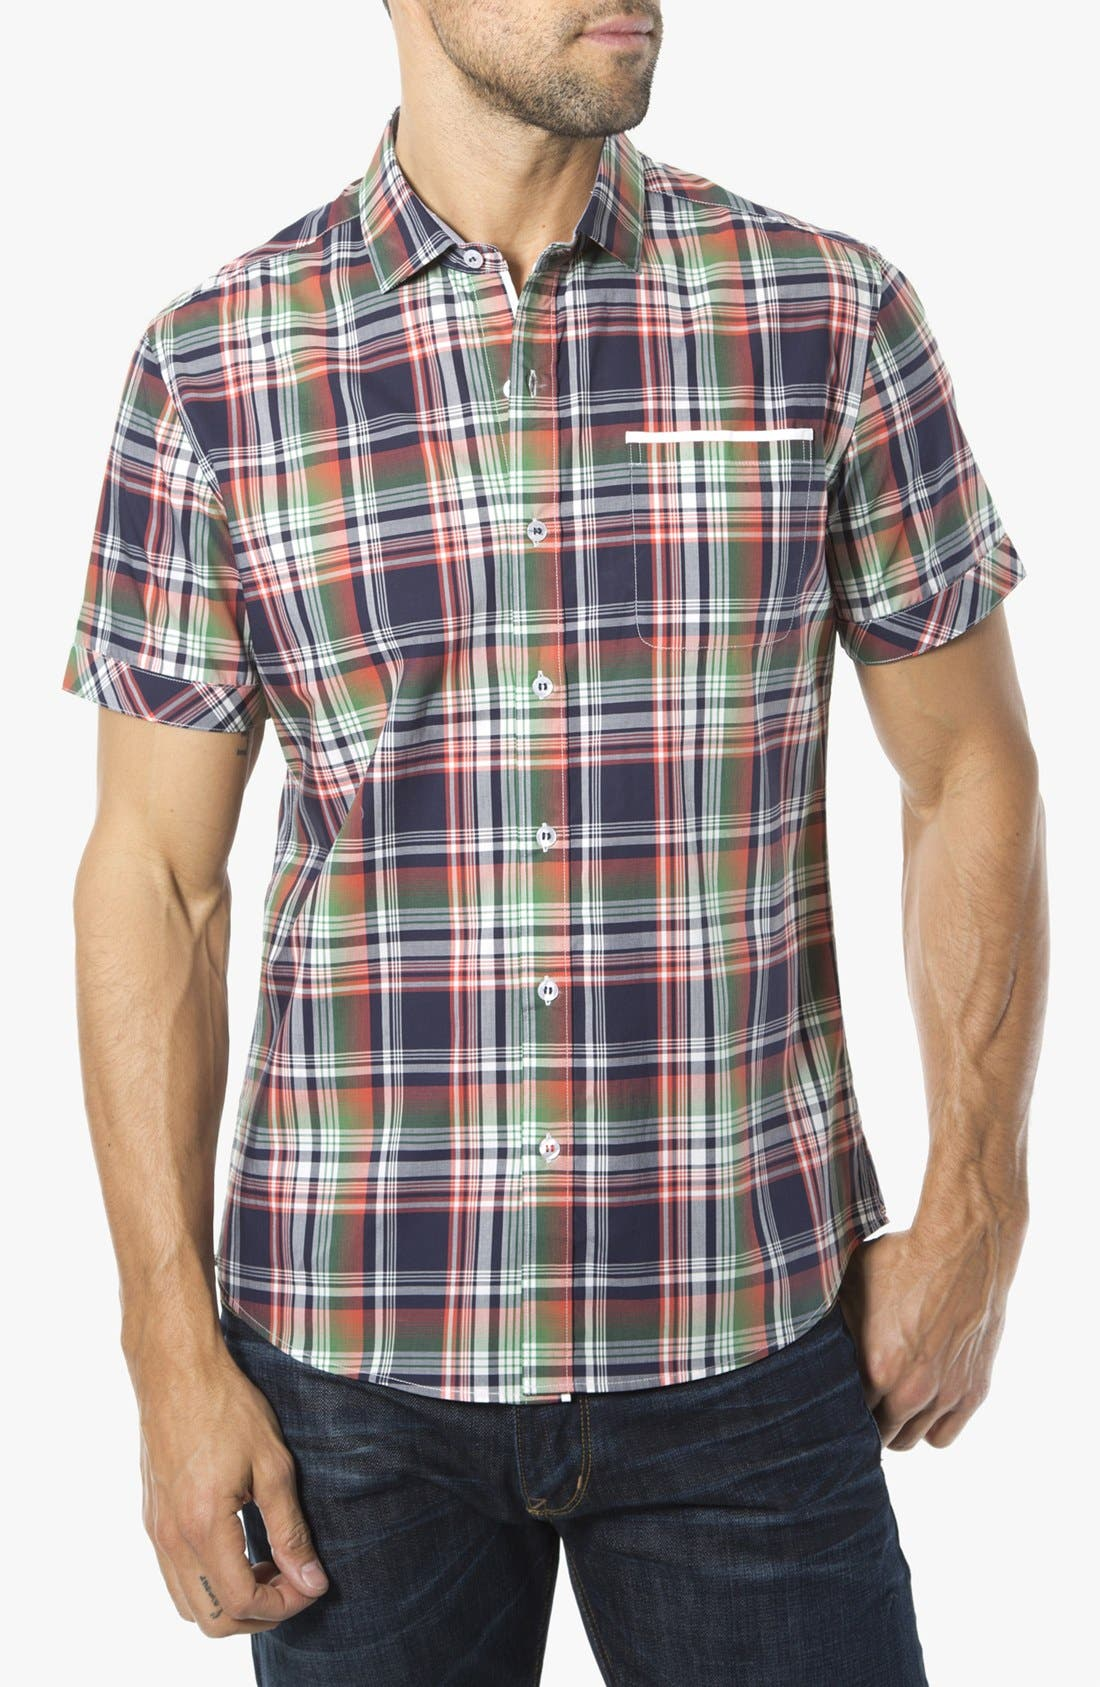 Alternate Image 1 Selected - 7 Diamonds 'Friend of Friends' Woven Short Sleeve Shirt